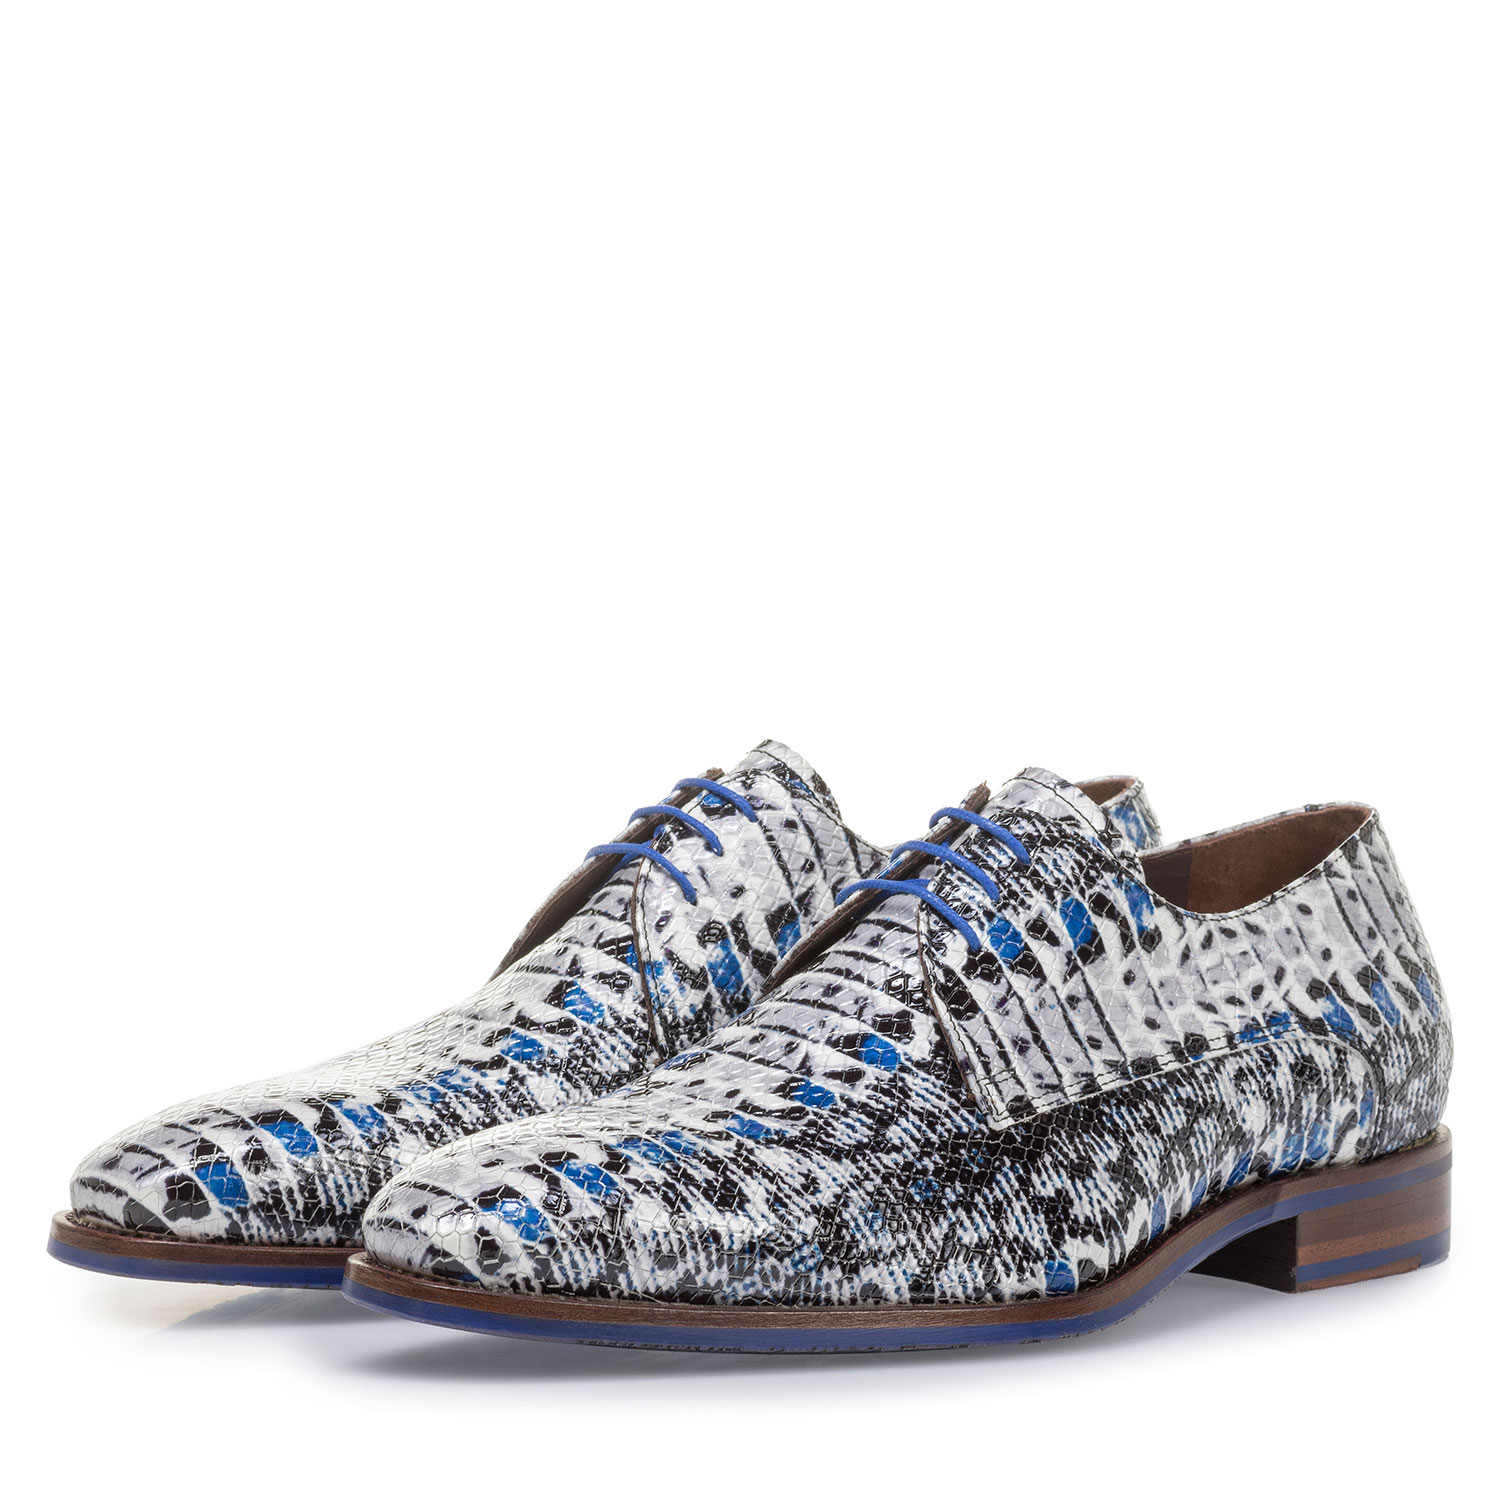 18346/04 - Blue patent leather lace shoe with snake print